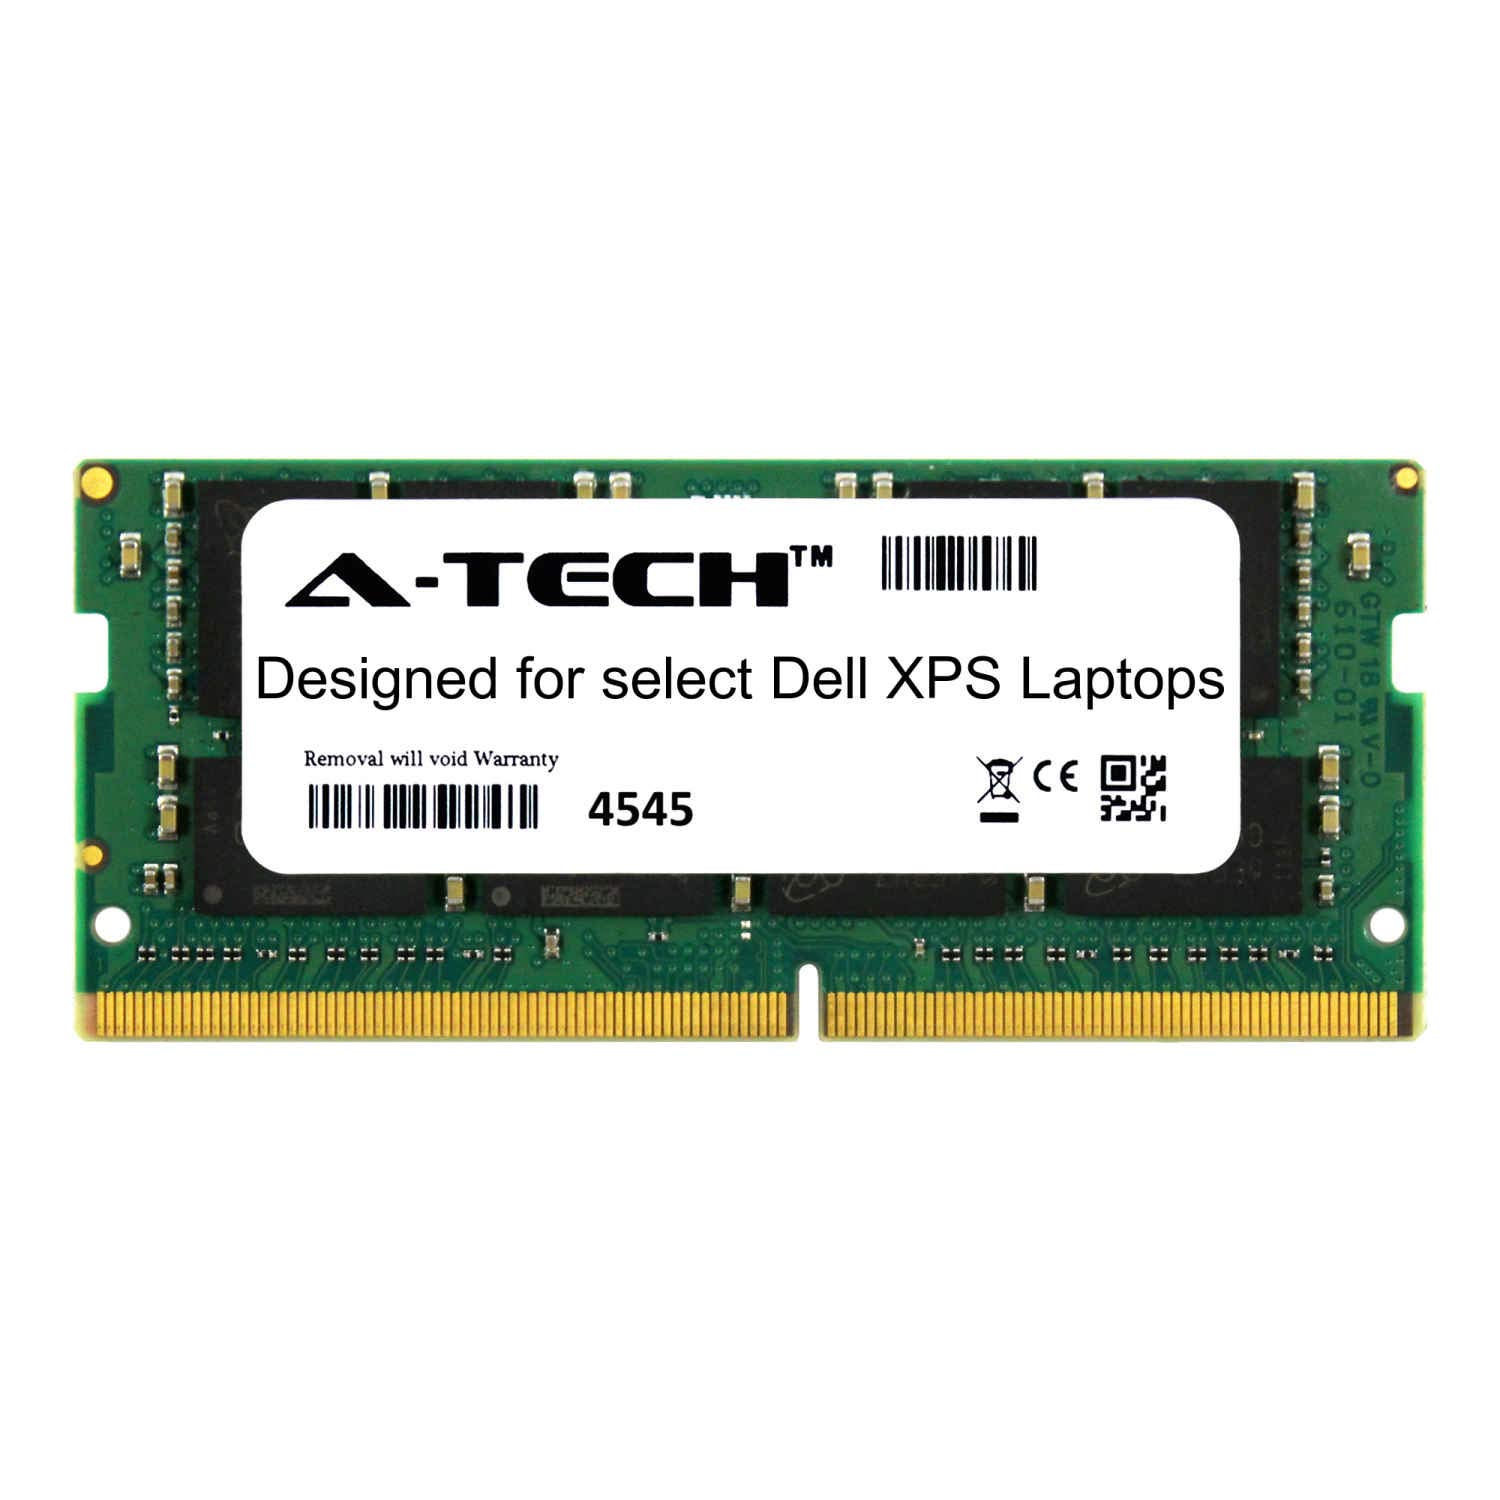 for Dell XPS 15 9550 9560 9570 Laptops /& Notebooks Memory Ram 2 x 8GB 16GB Kit